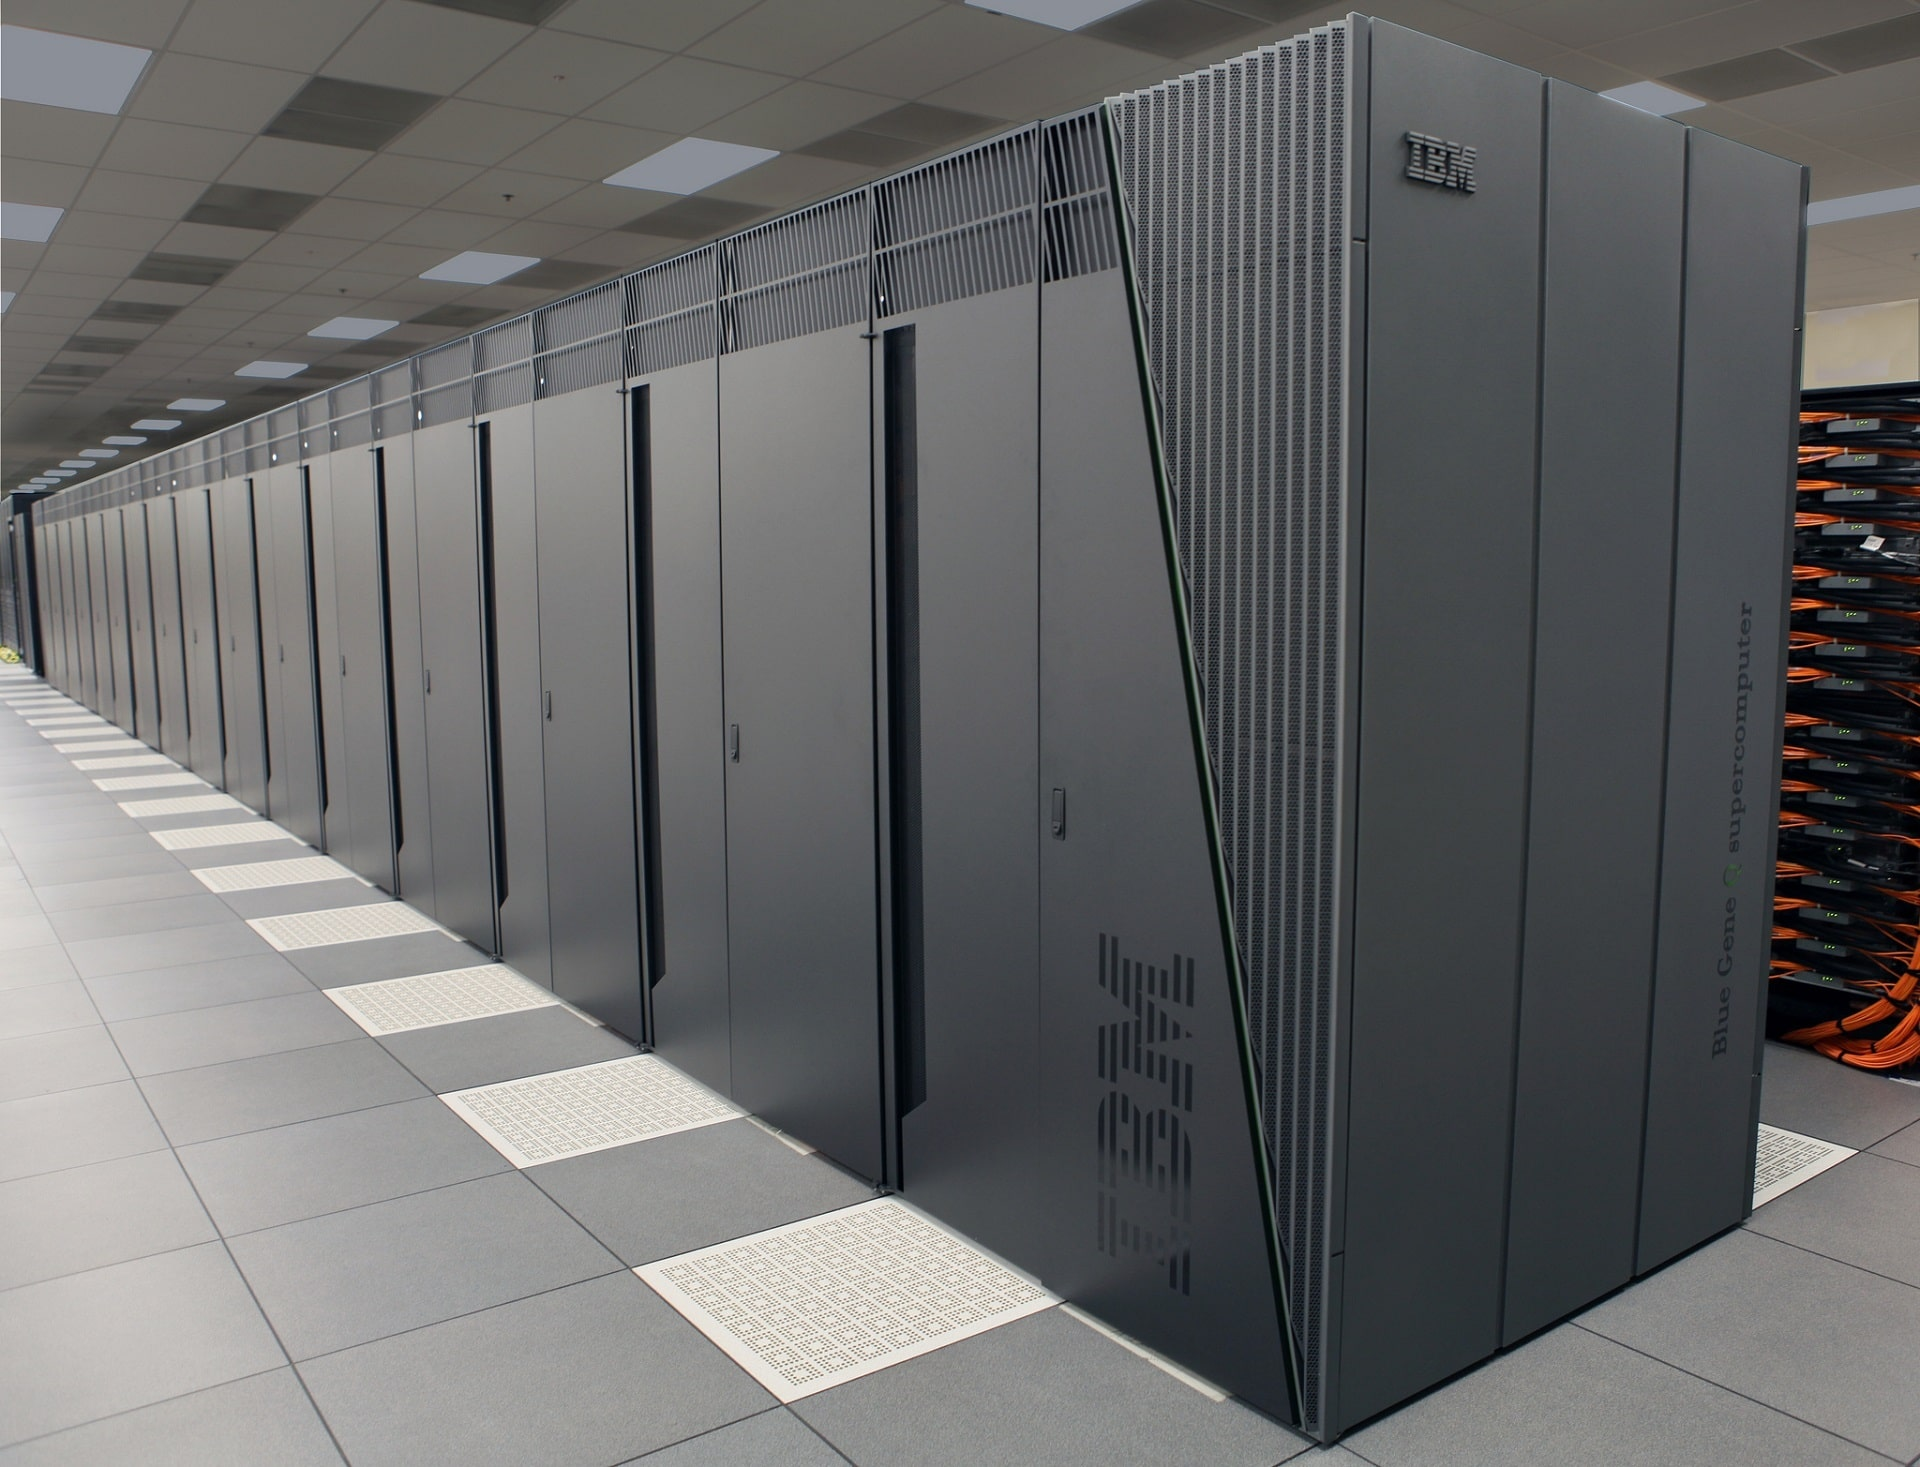 Bank of processors for a supercomputer offering computer support to the Met Office